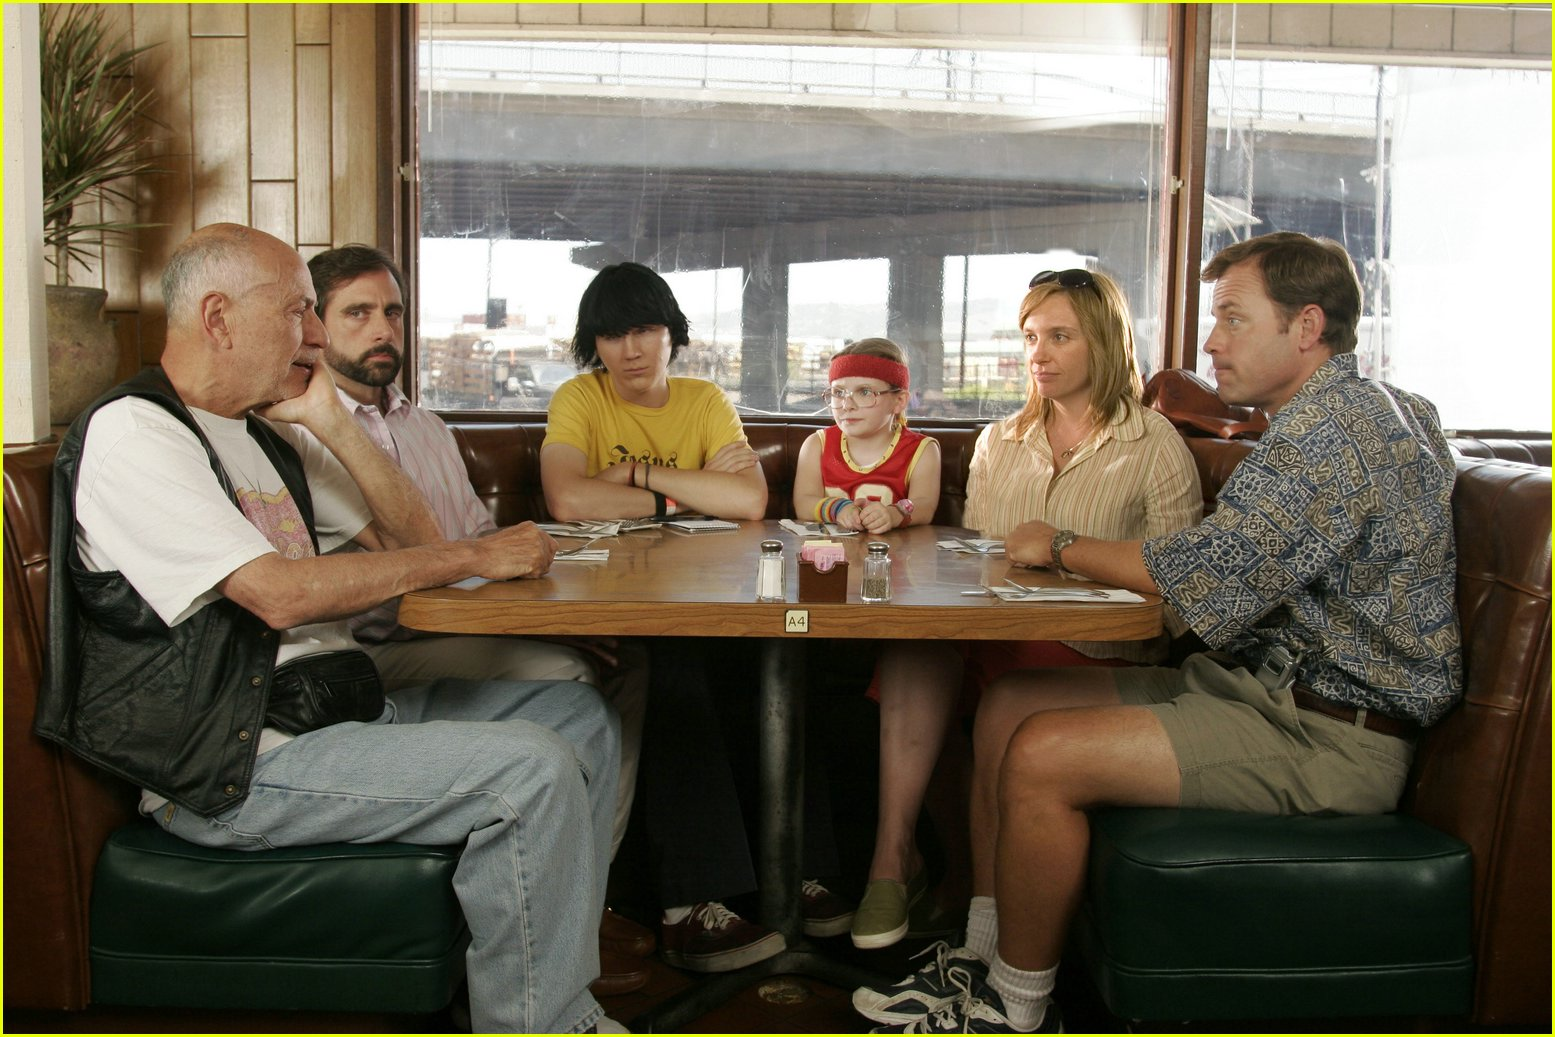 little-miss-sunshine-stills04.jpg